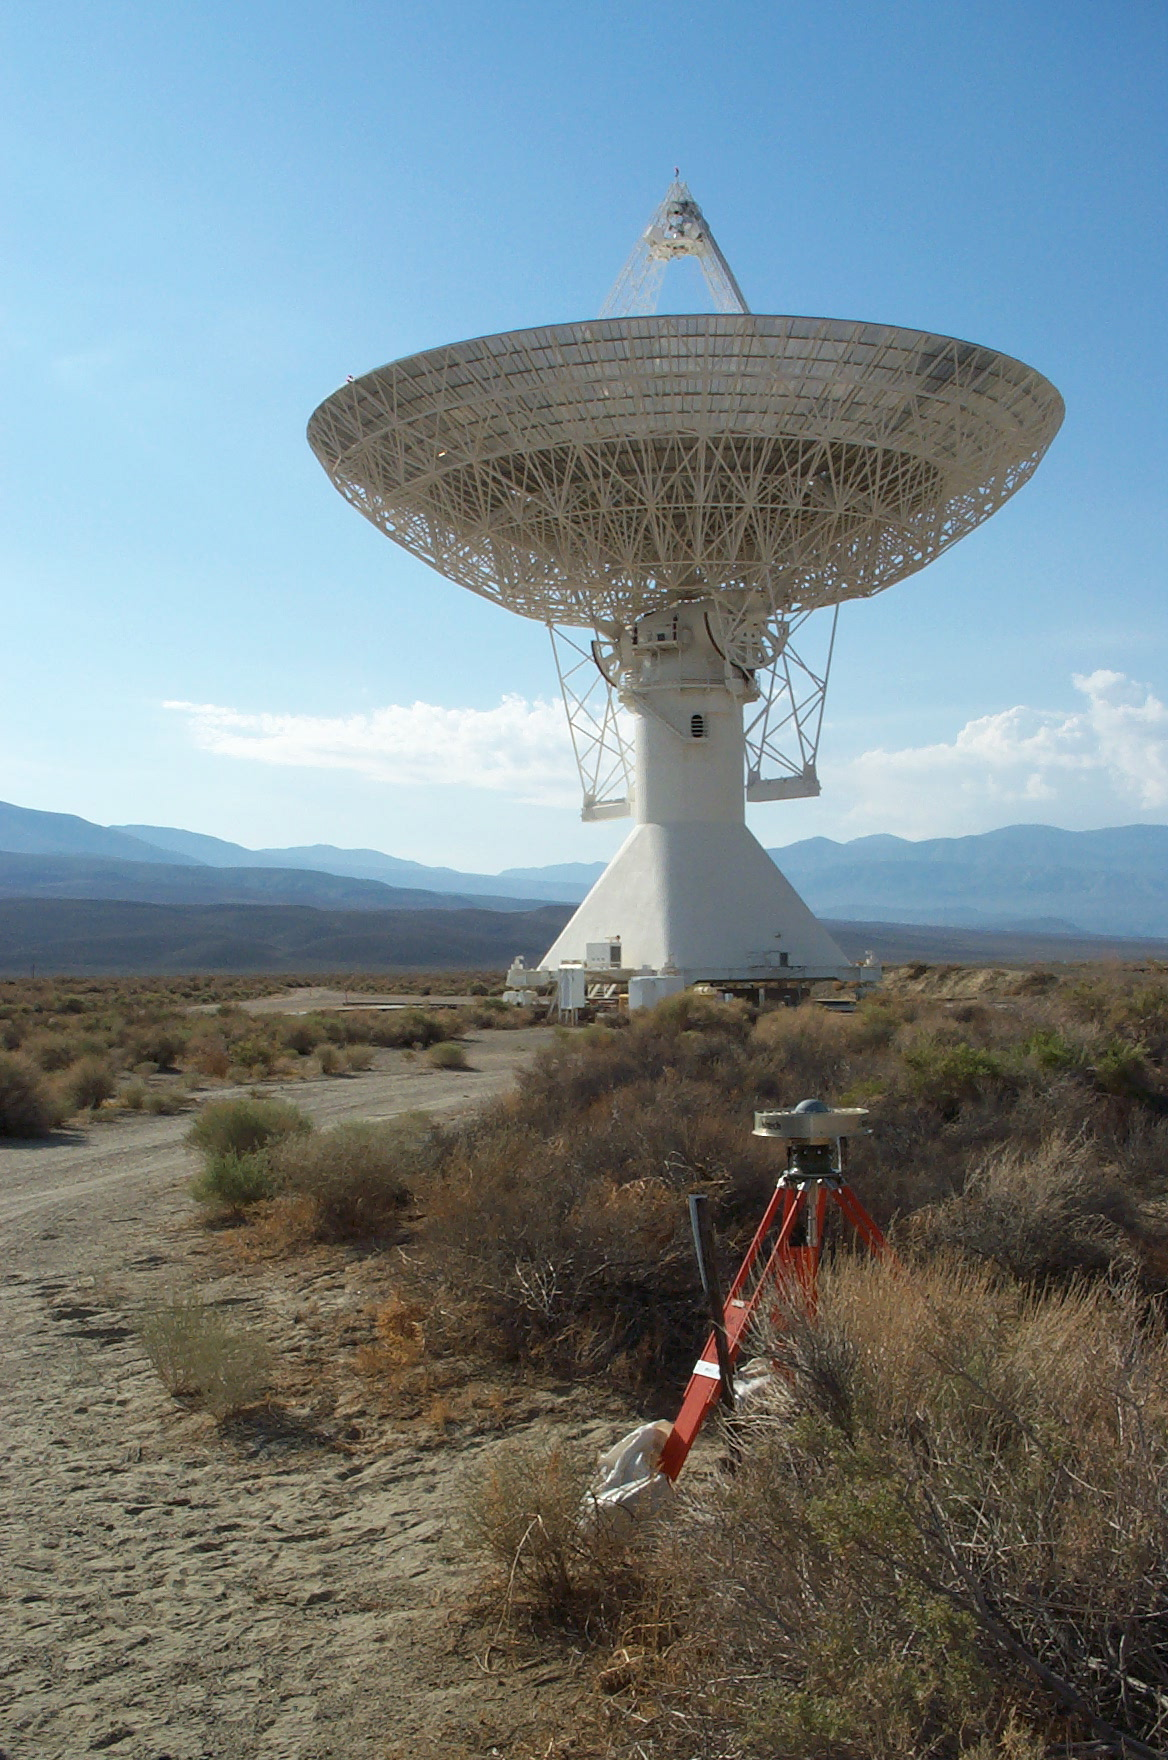 GPS station OVRO. Located at the Owens Valley Radio Observatory near Big Pine, California.